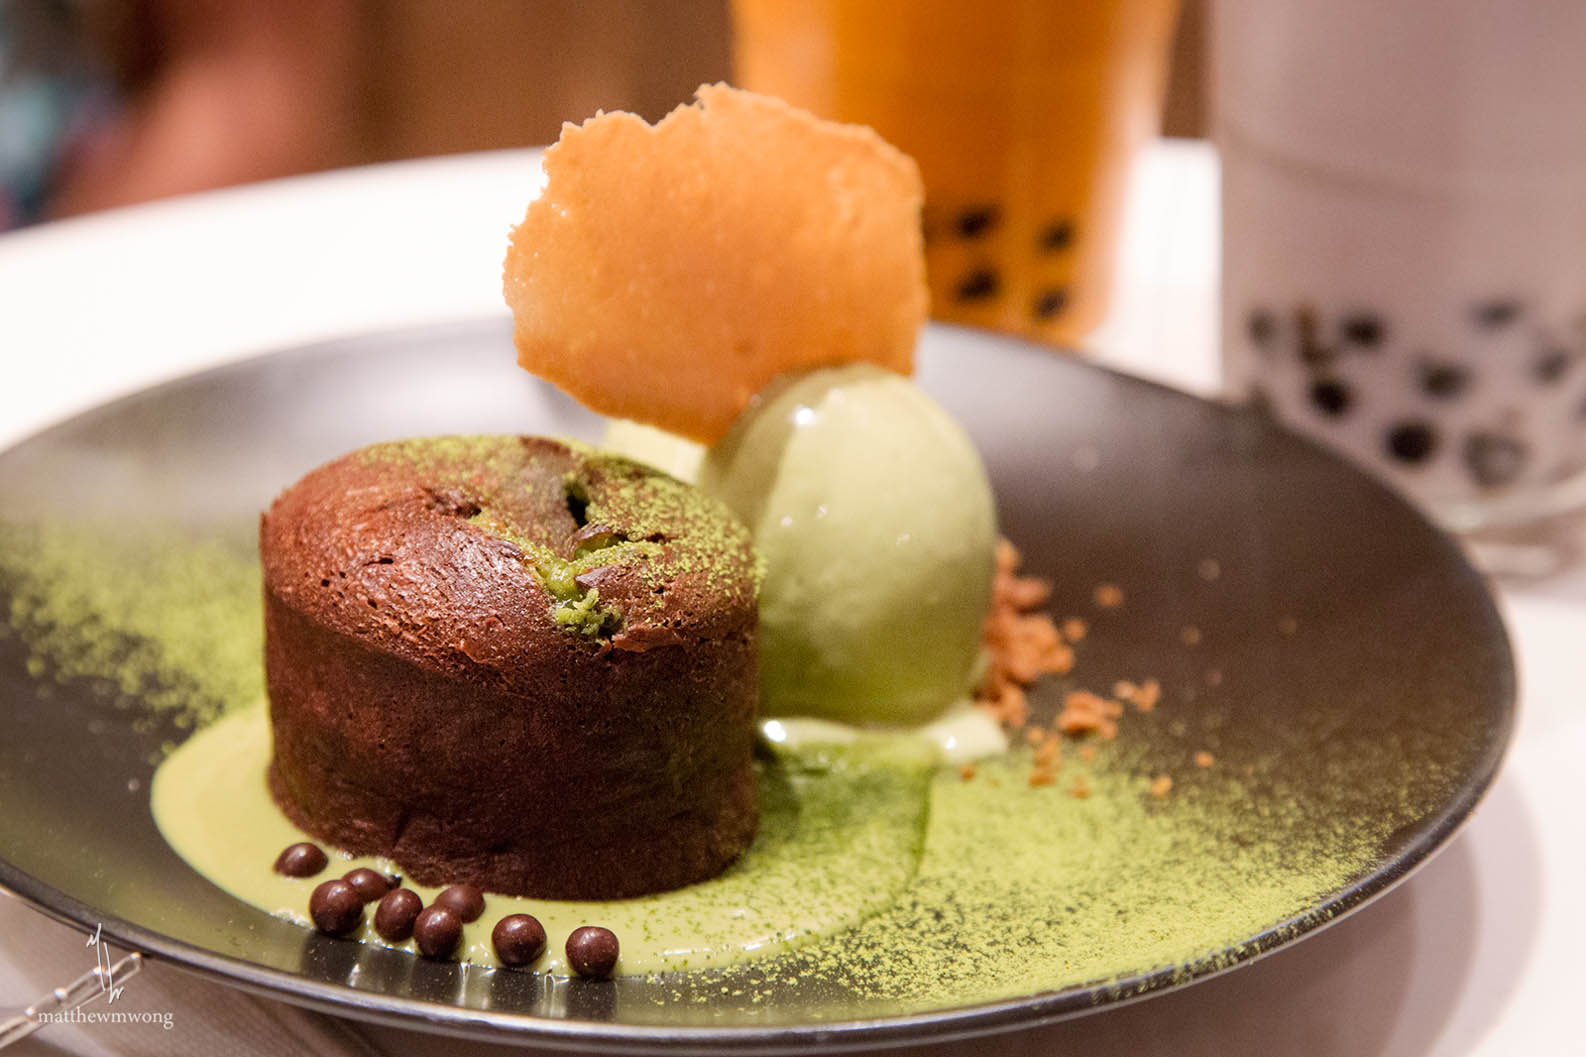 Chocolate Green Tea Lava Cake - chocolate cake, green tea ganache, green tea ice cream, walnut soil